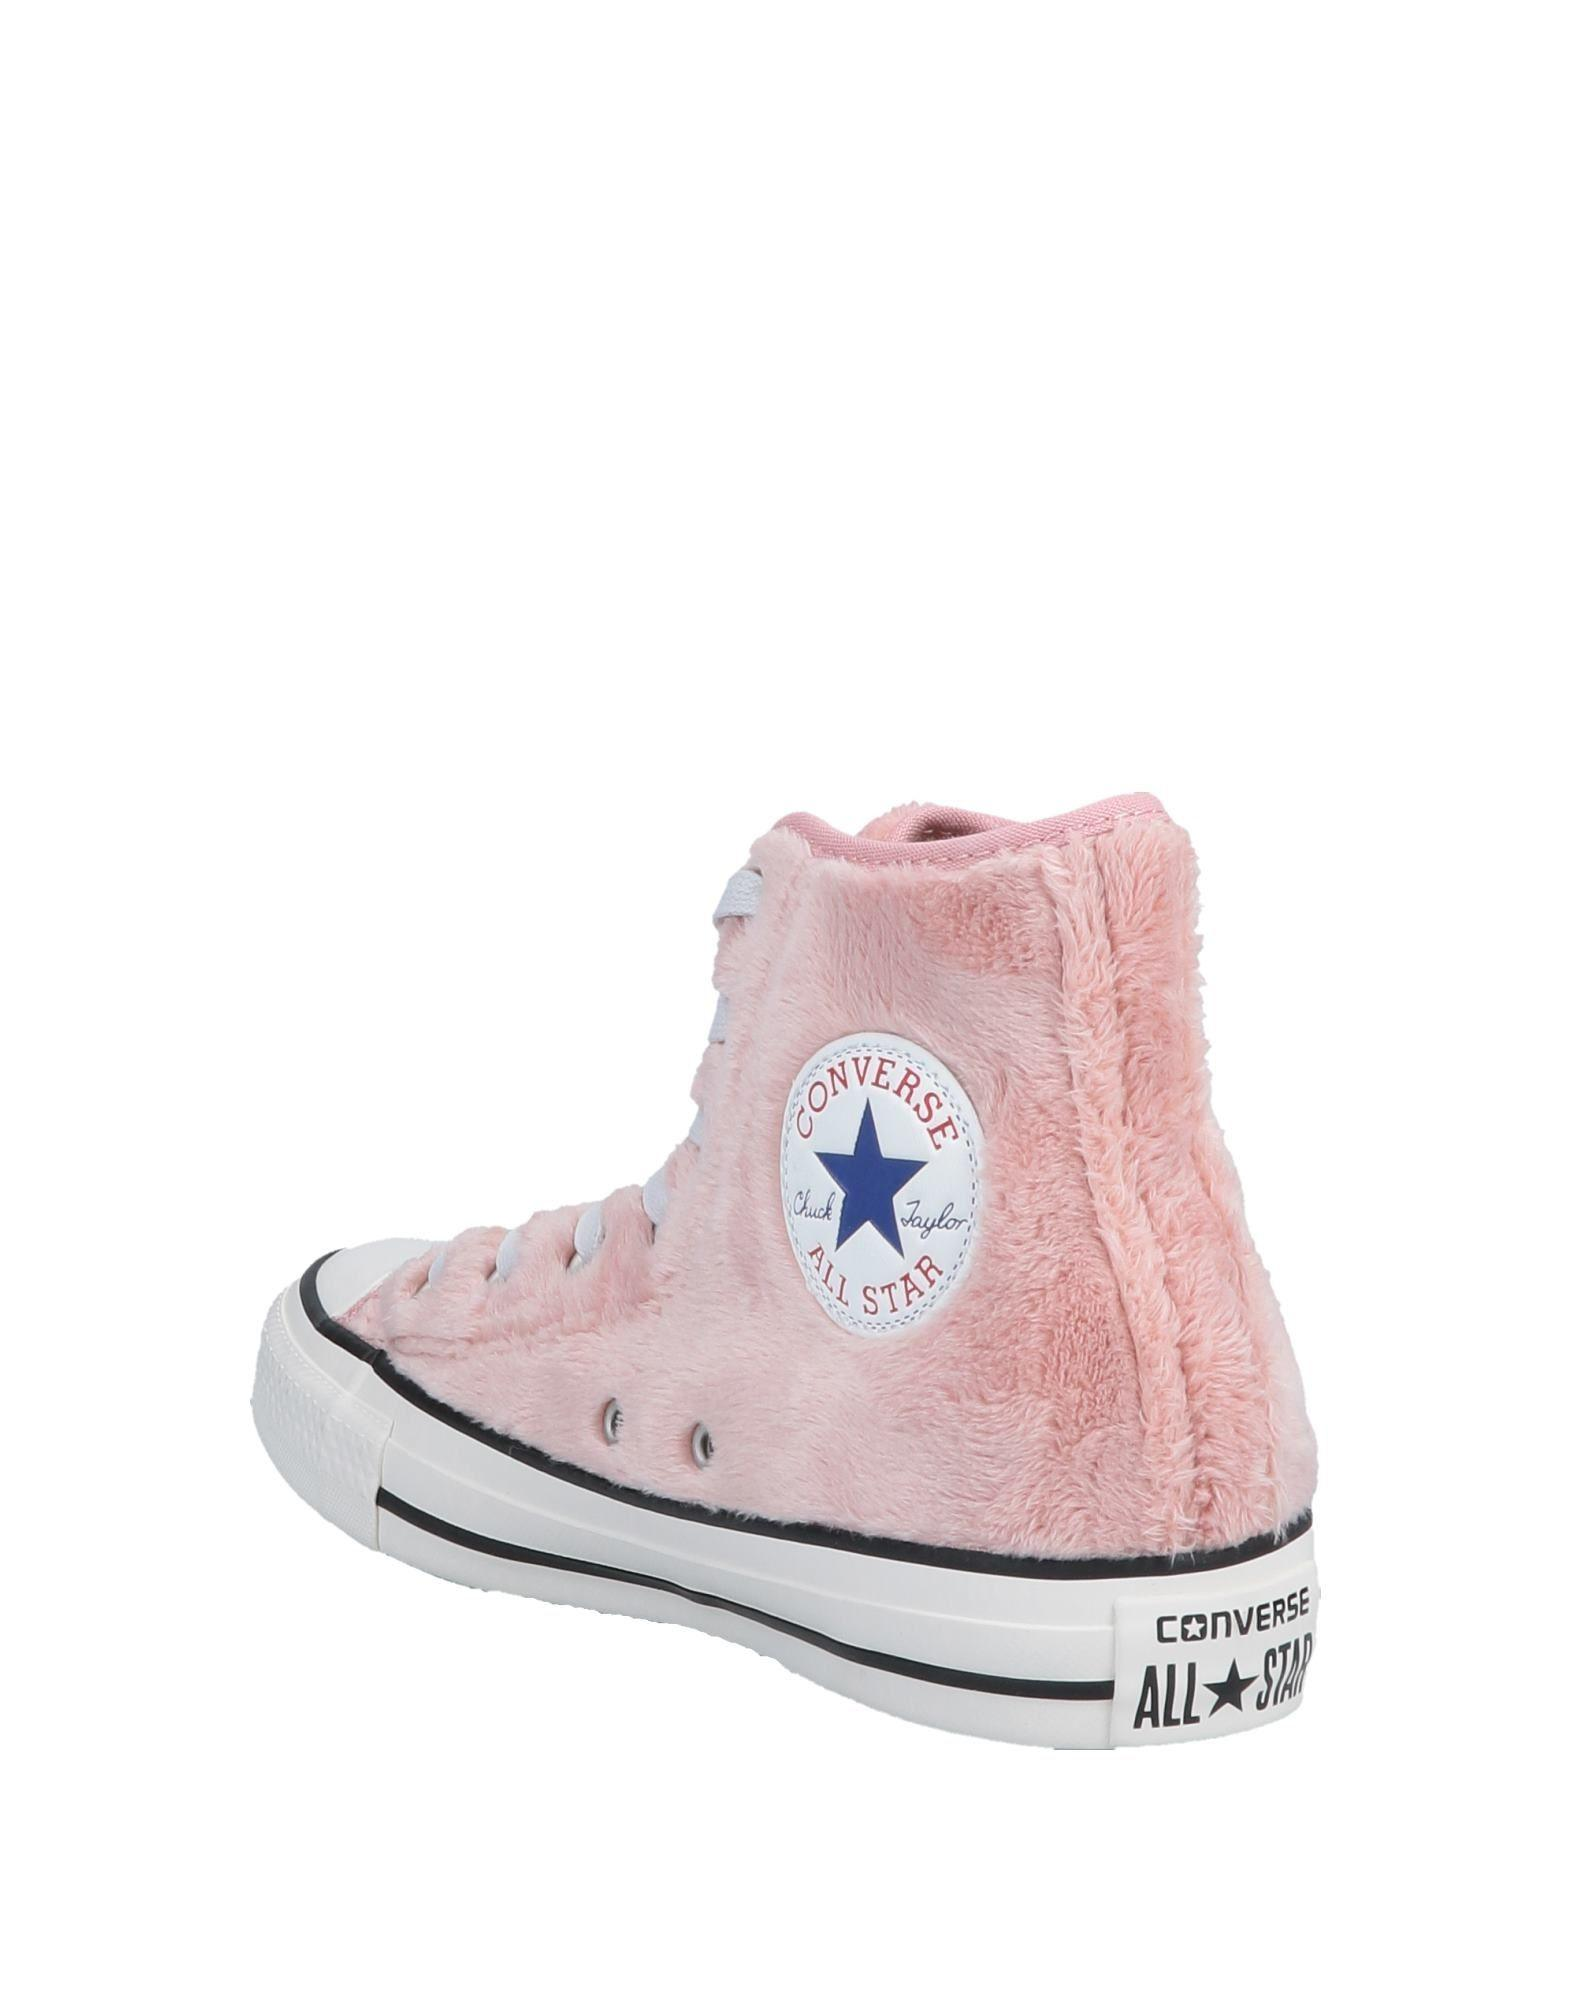 4df43ad8611071 Converse High-tops   Sneakers in Pink - Lyst